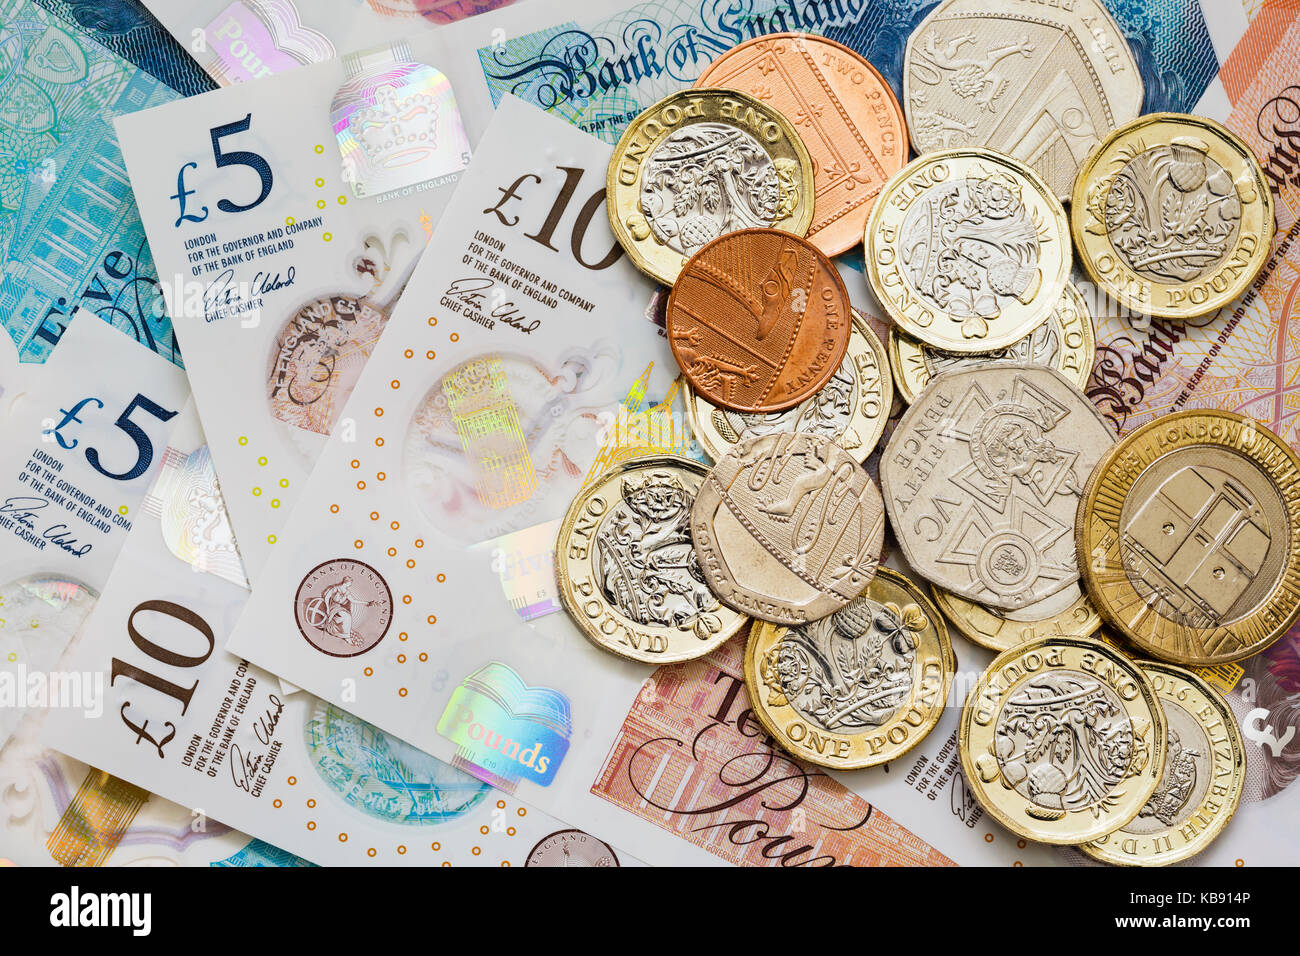 British UK money sterling £10 and £5 notes GBP and a pile of new issue pounds one pound coins cash. Saving - Stock Image